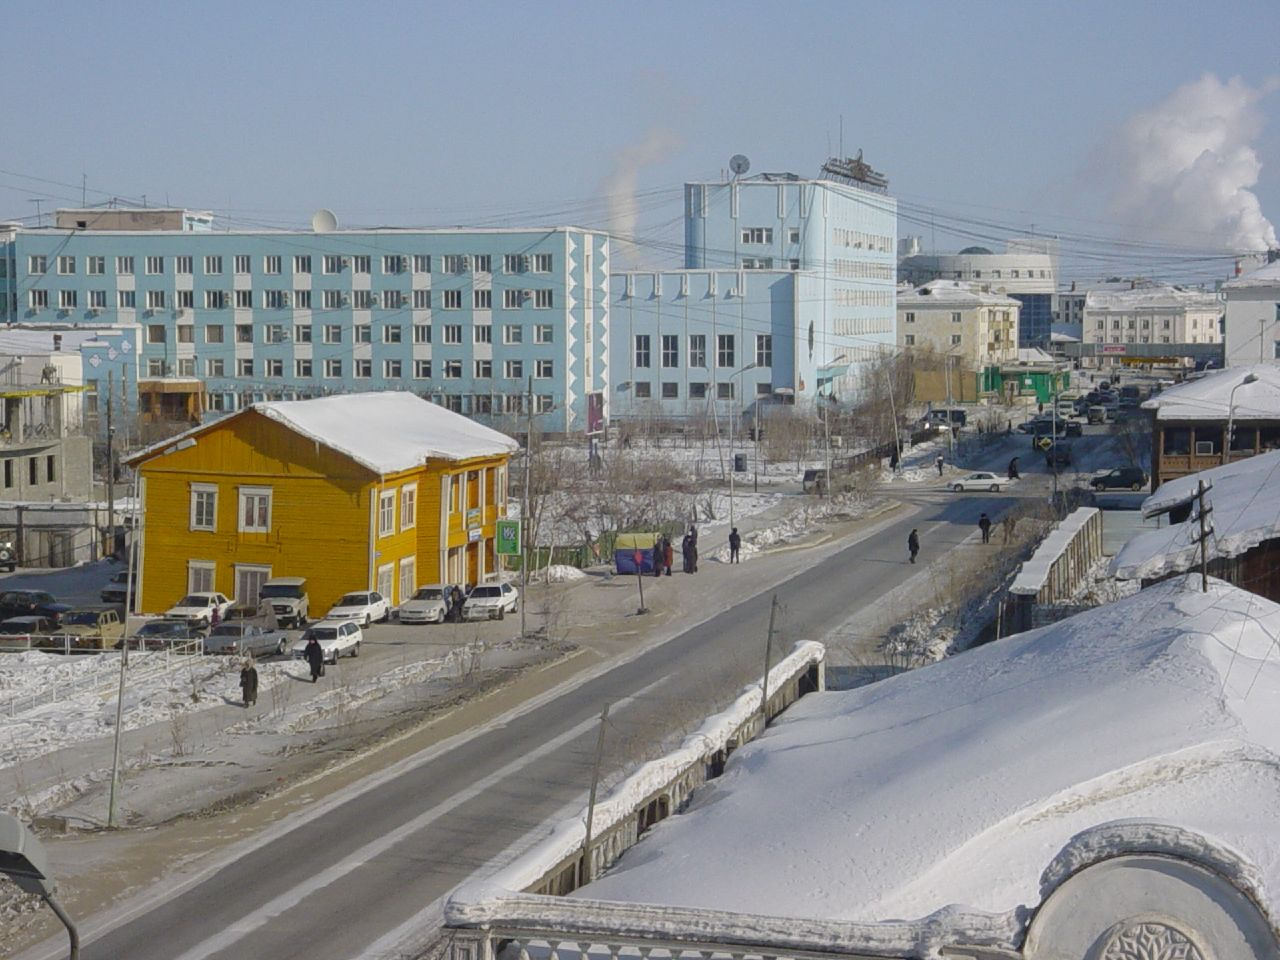 Yakutsk, Russia Most Remote Cities in the World